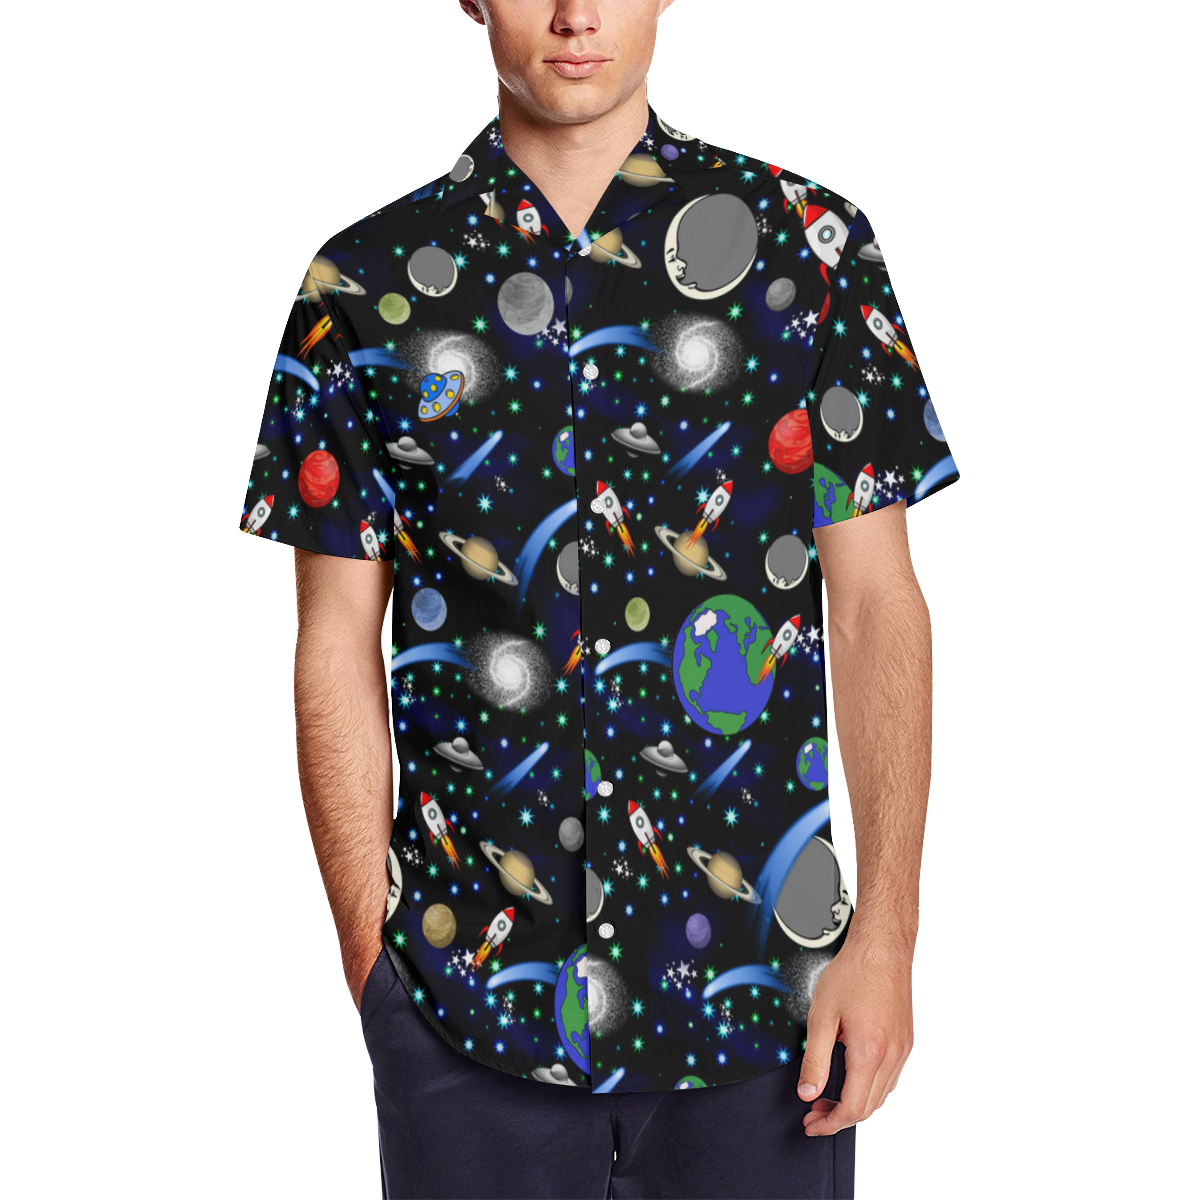 Galaxy Universe - Planets, Stars, Comets, Rockets Men's Short Sleeve Shirt with Lapel Collar (Model T54)